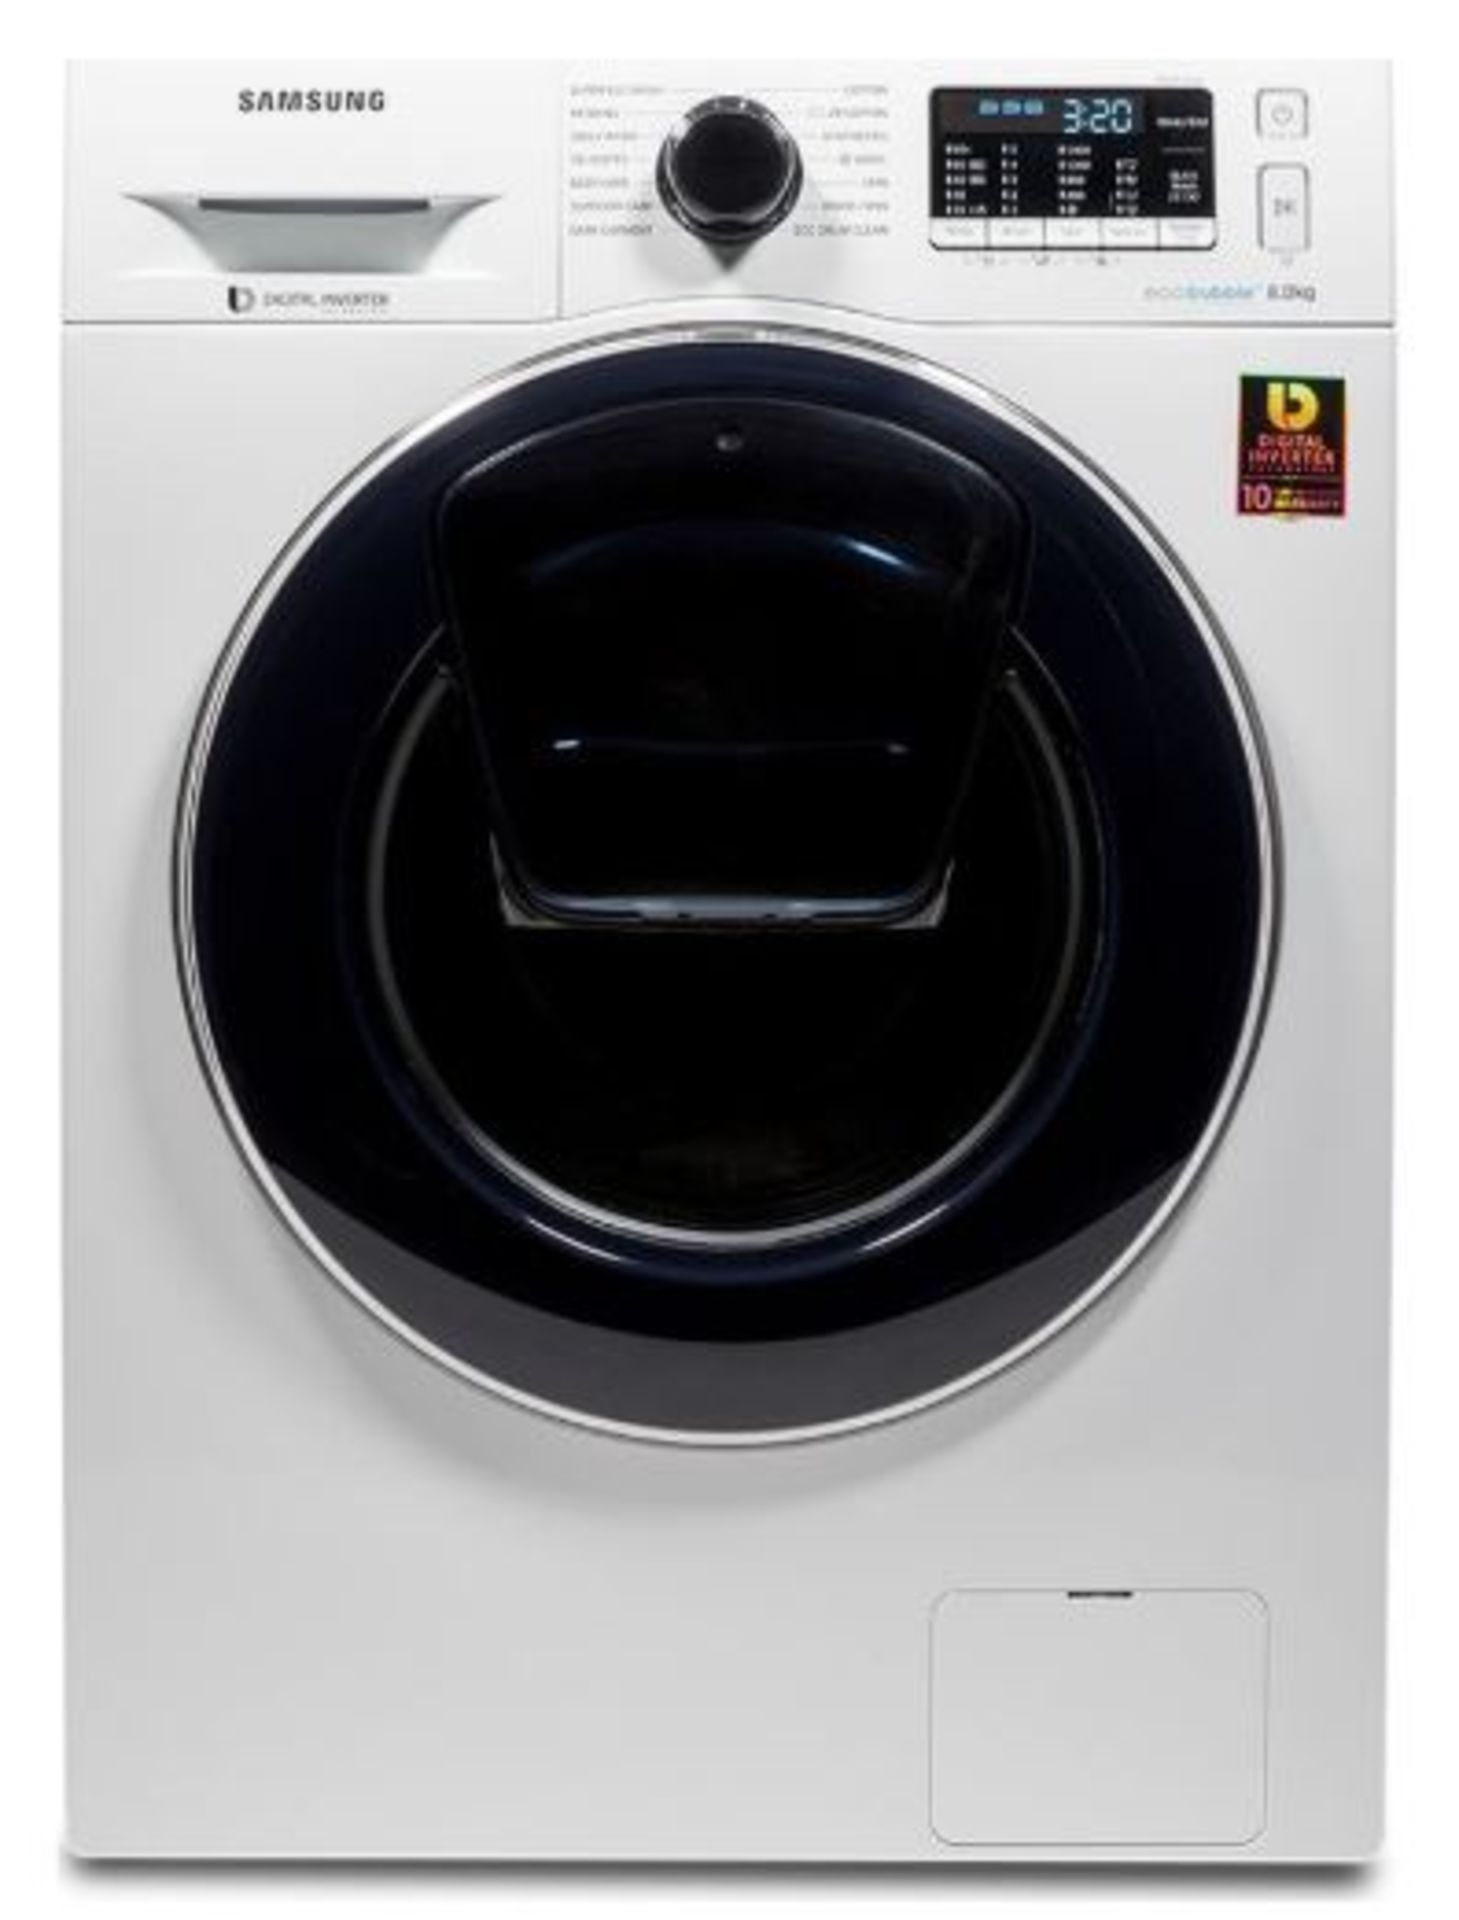 Pallet of 2 Samsung Premium Washing machines. Total Latest selling price £778*